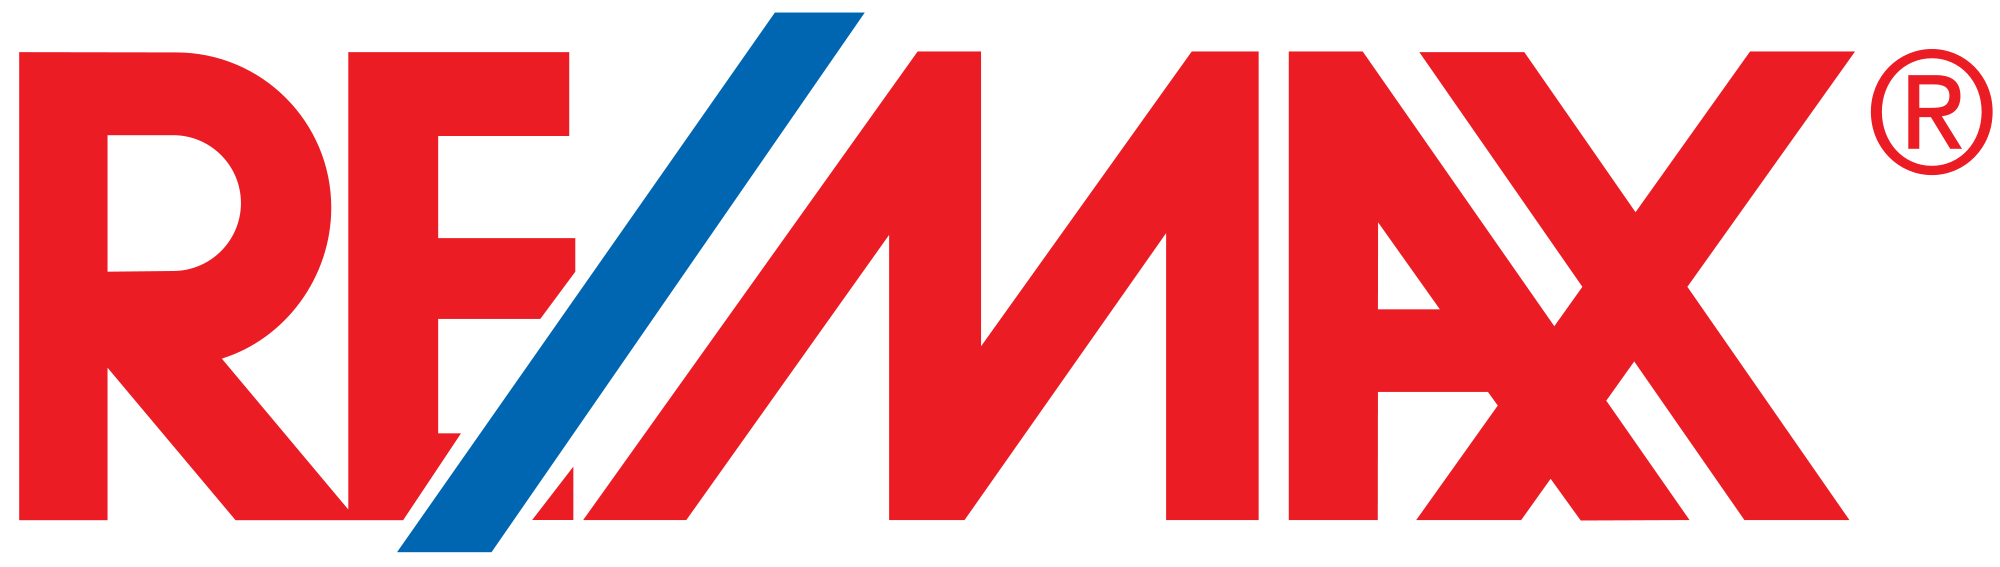 REMAX_logo.svg